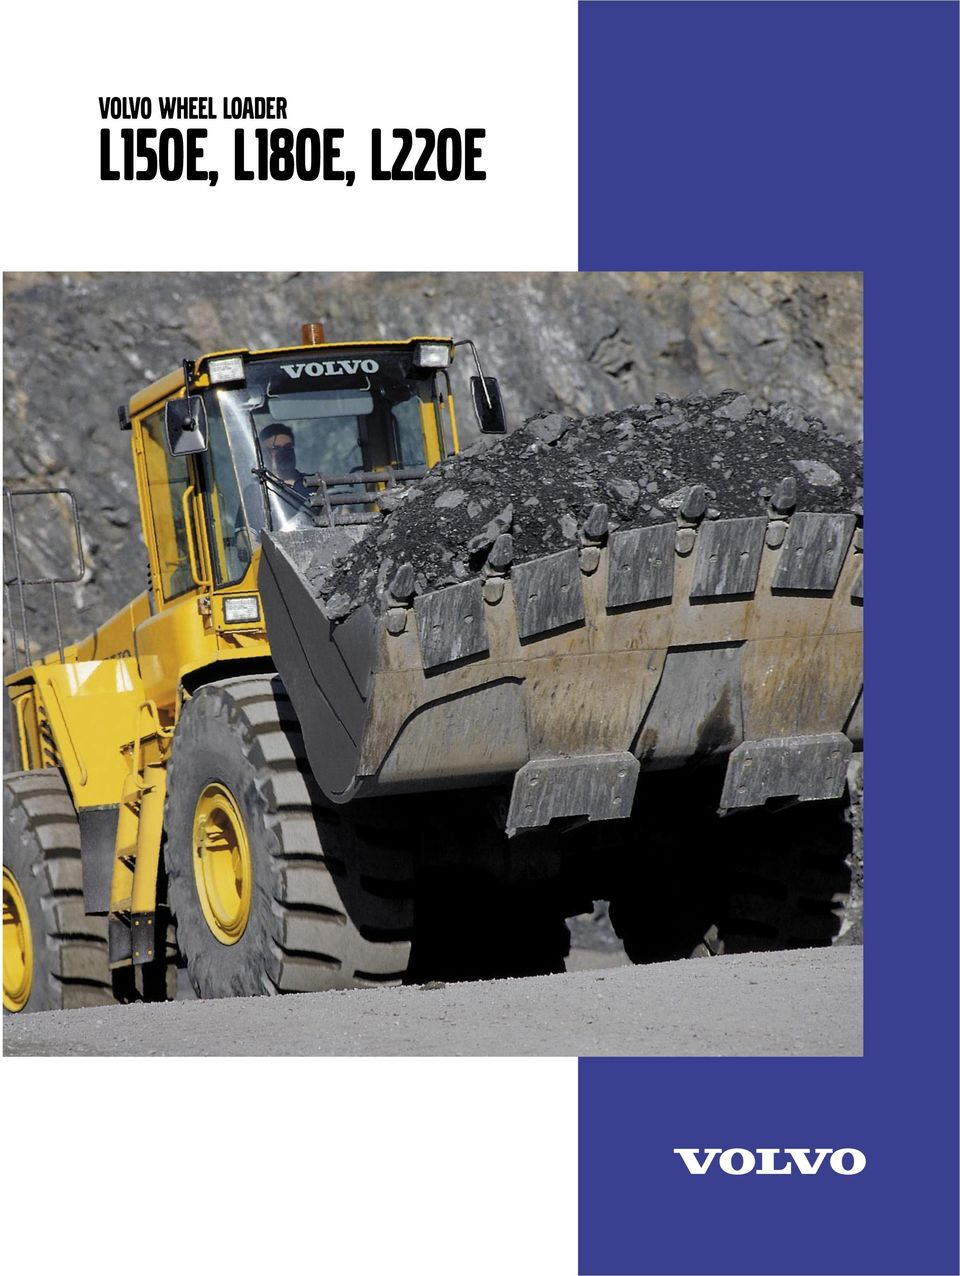 2 OWERFUL, DEENDABLE AND EASY TO OERATE Volvo L150E, L180E and L220E: High  power, dependability, and ease of operation credited to the new generation  of ...